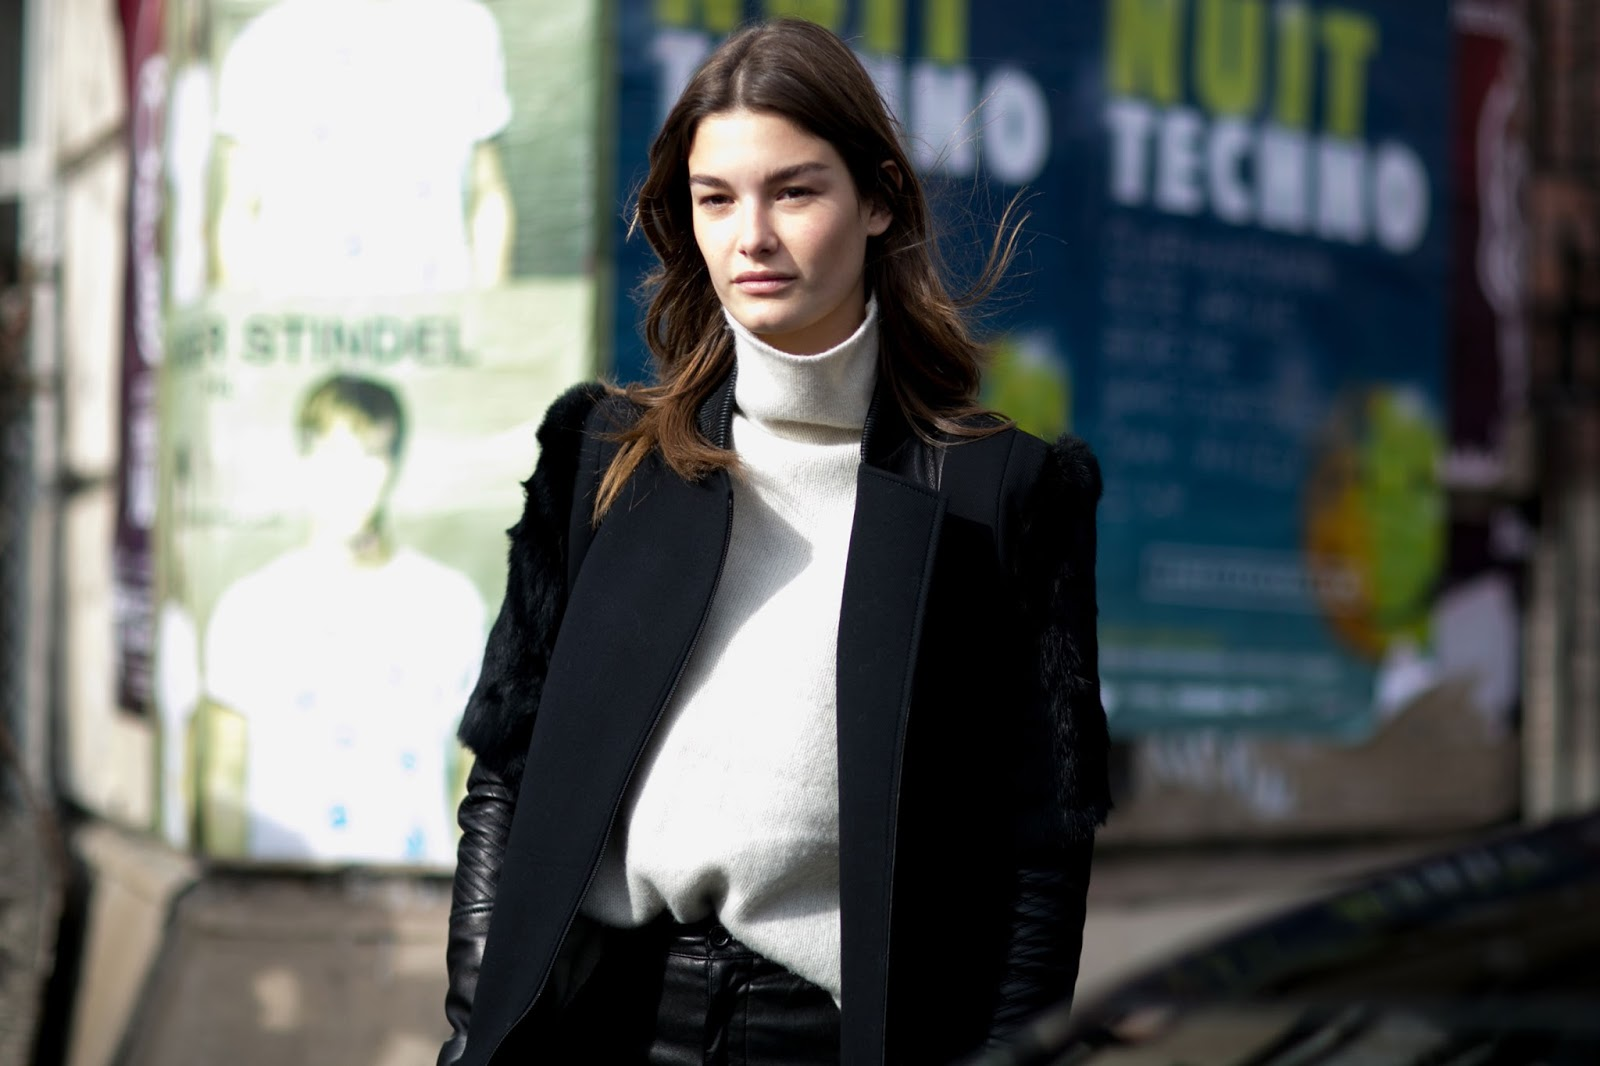 Street Style:Ophelie Guillermand is Sophisticated in Black & White